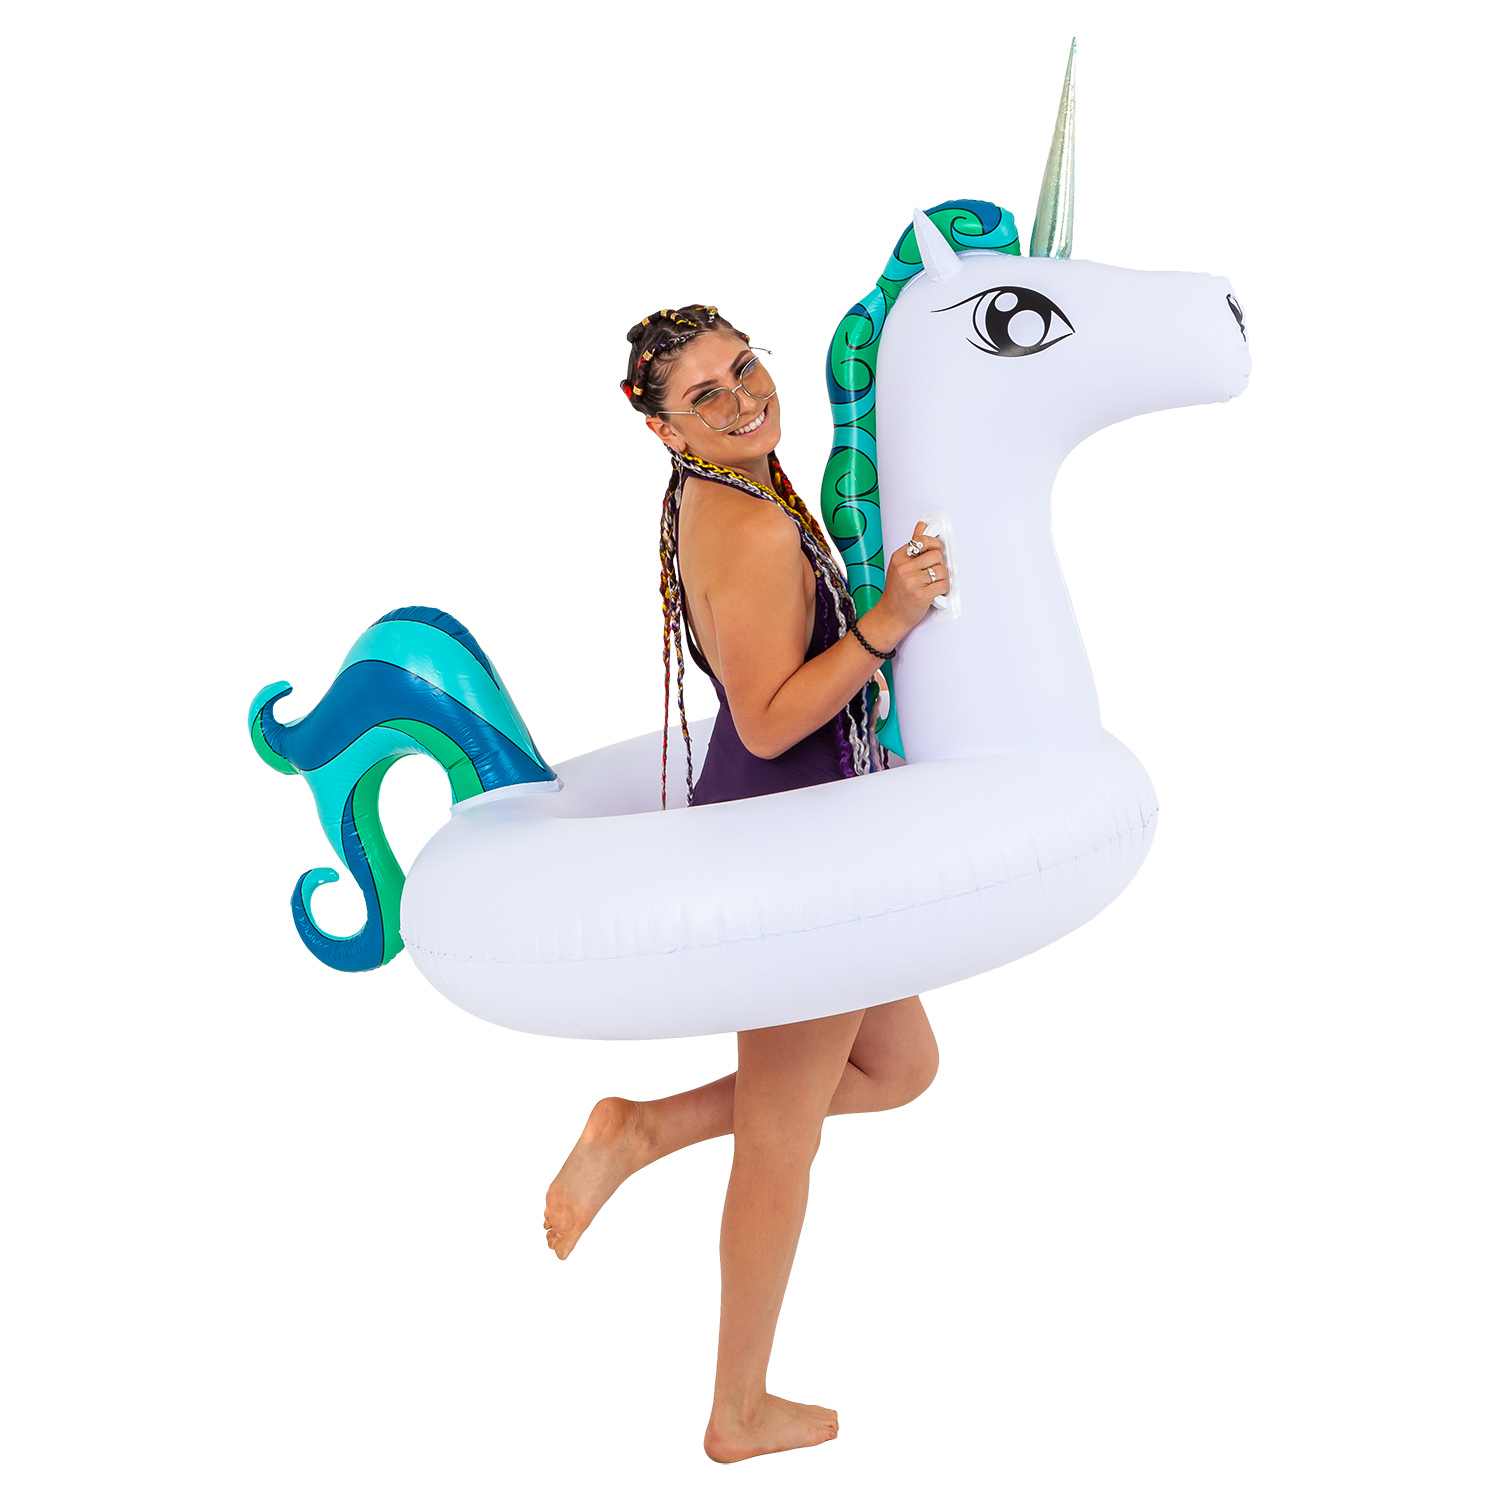 Giant 6 Ft Inflatable Tropical Unicorn Pool Ring Float Fun Party Toy Kids Adult 848849006988 Ebay